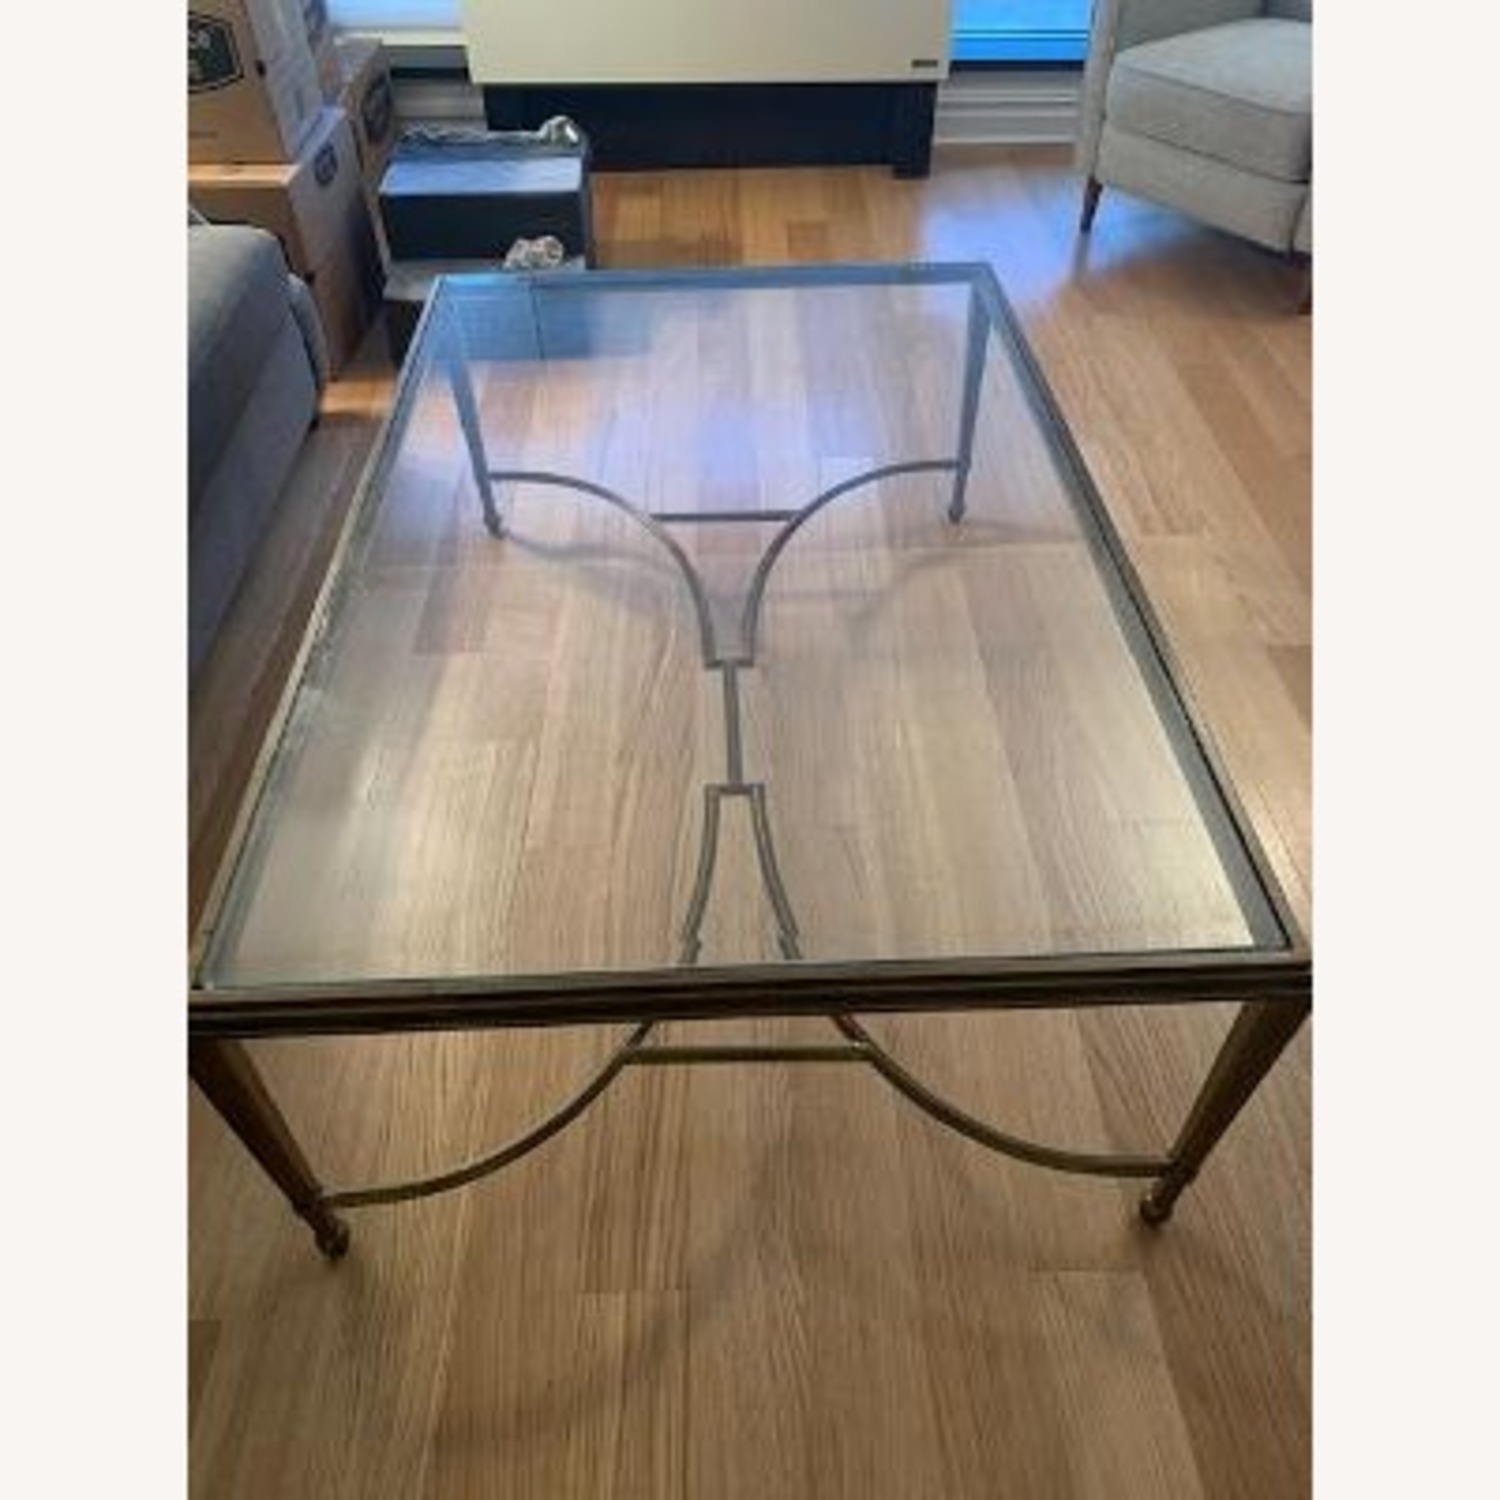 Bloomingdales Bronze and Glass Cocktail Table - image-1